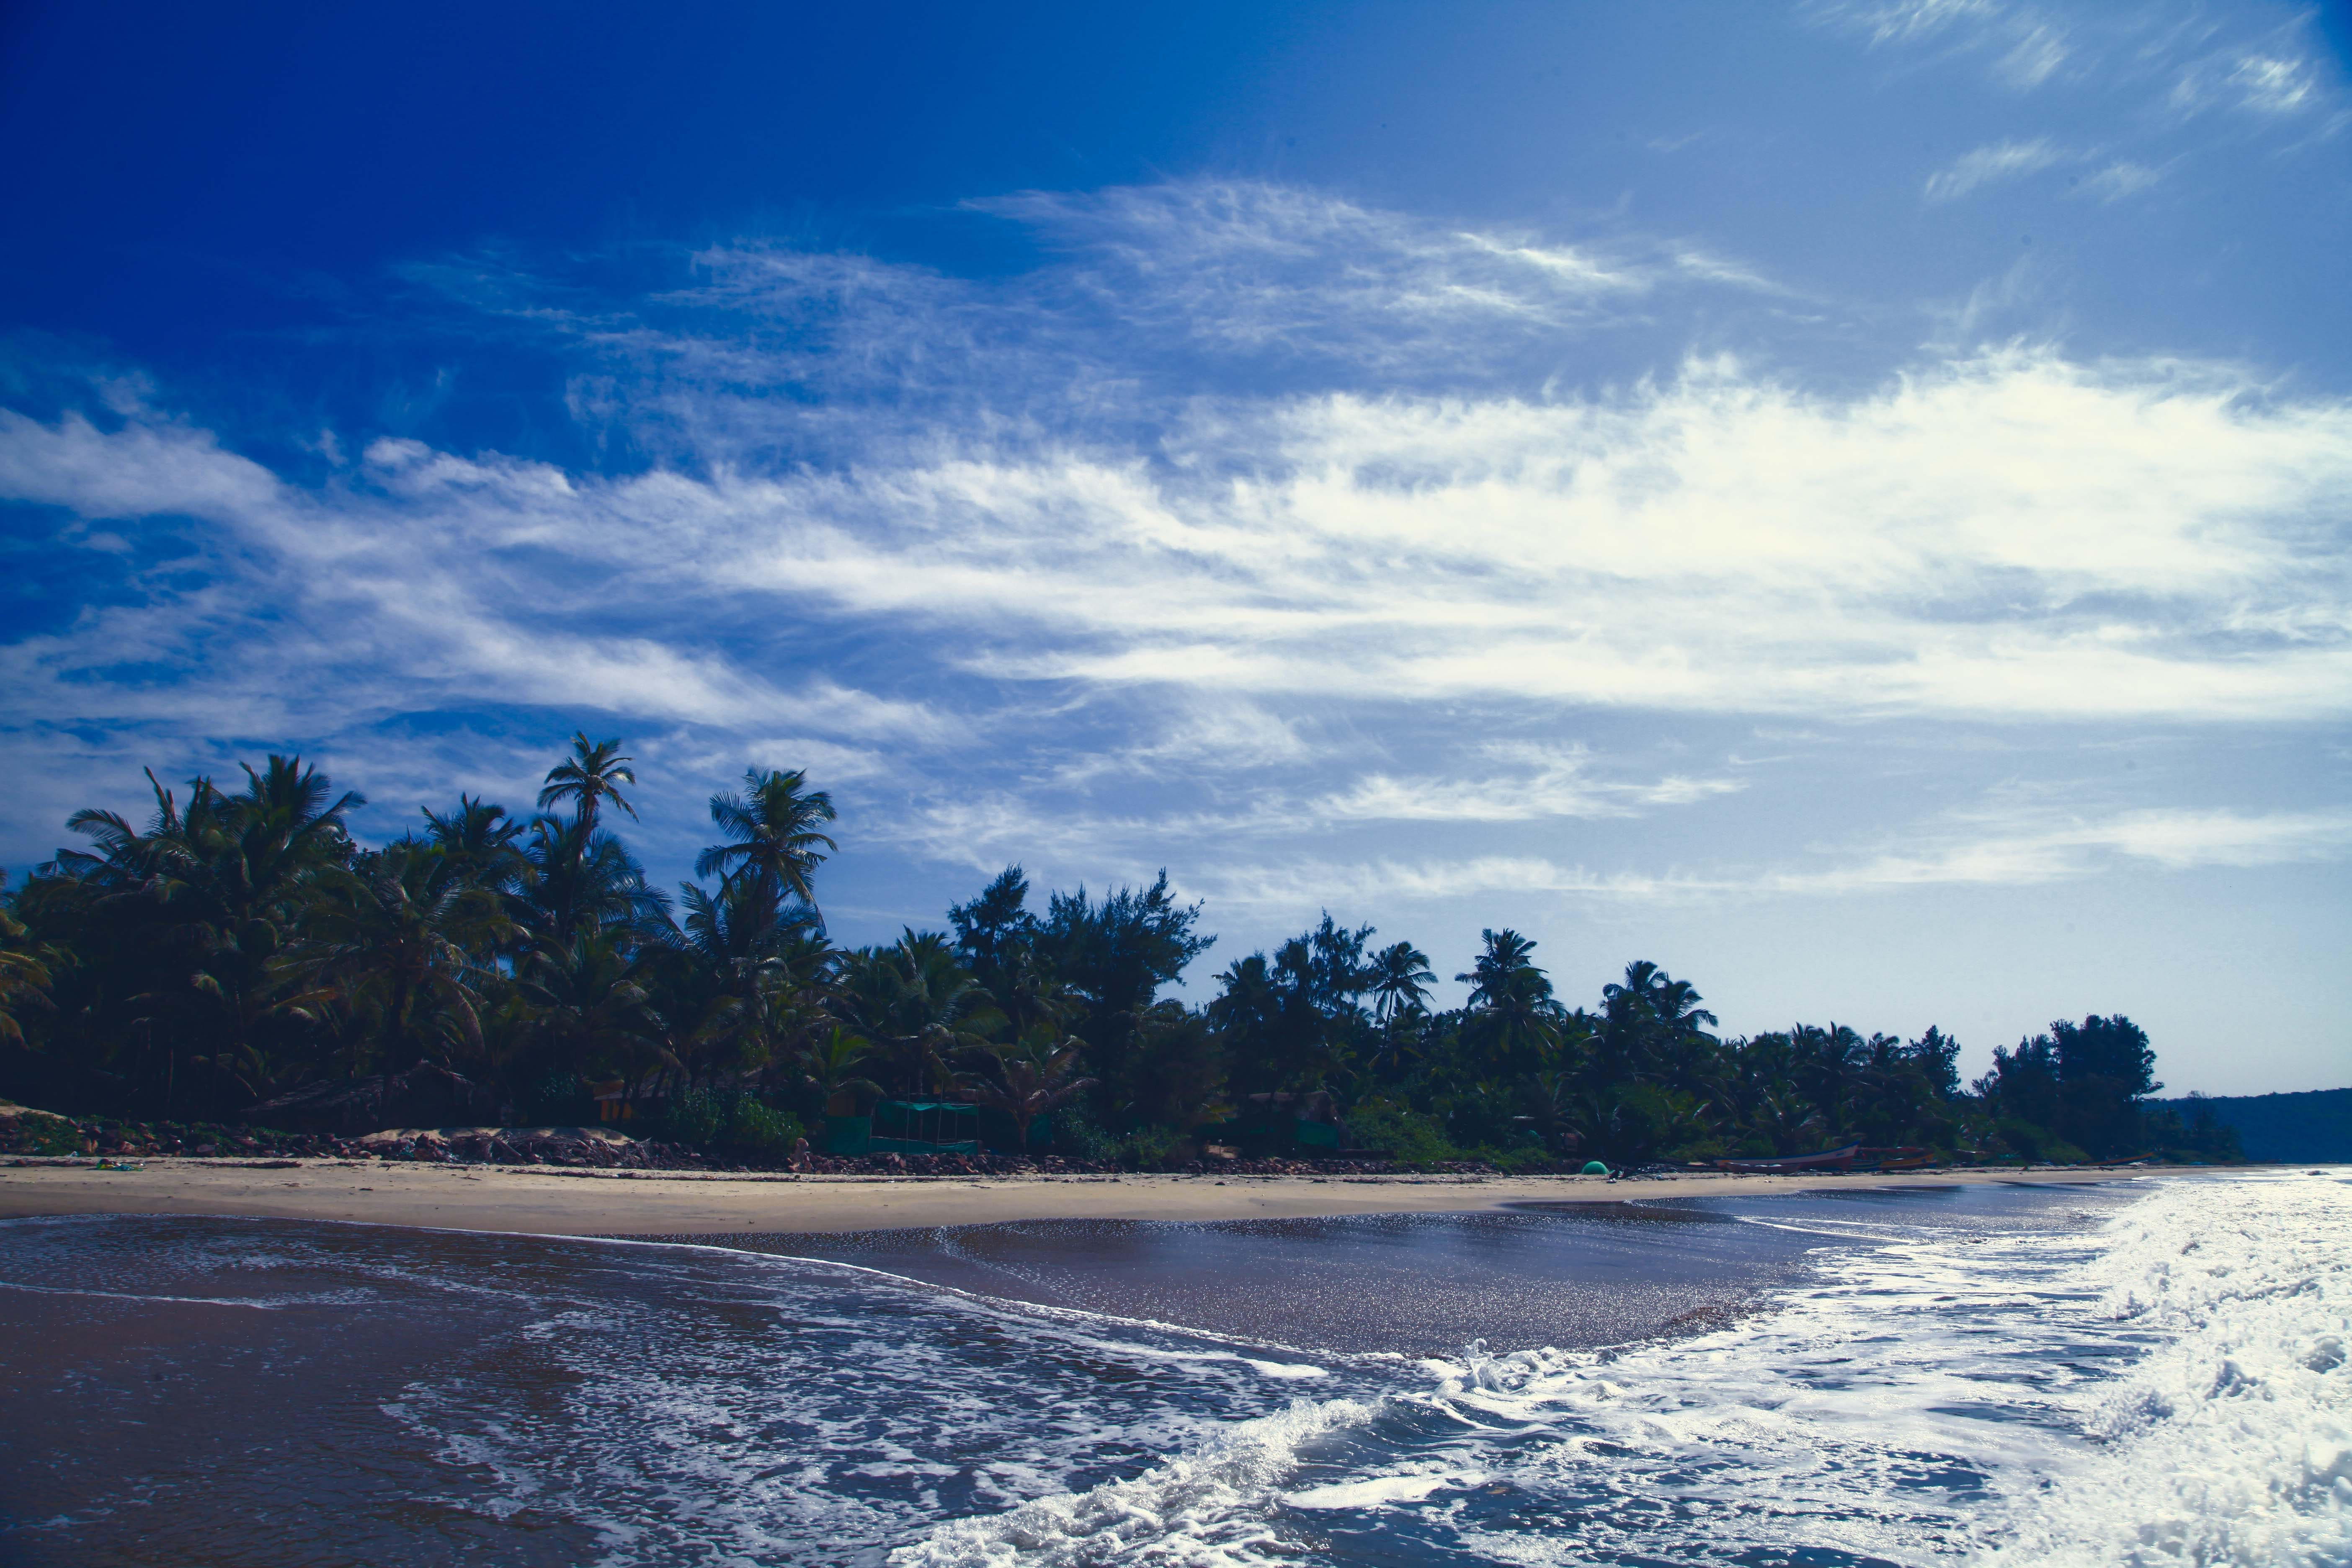 Landscape Photography of Coconut Tree Near Seashore